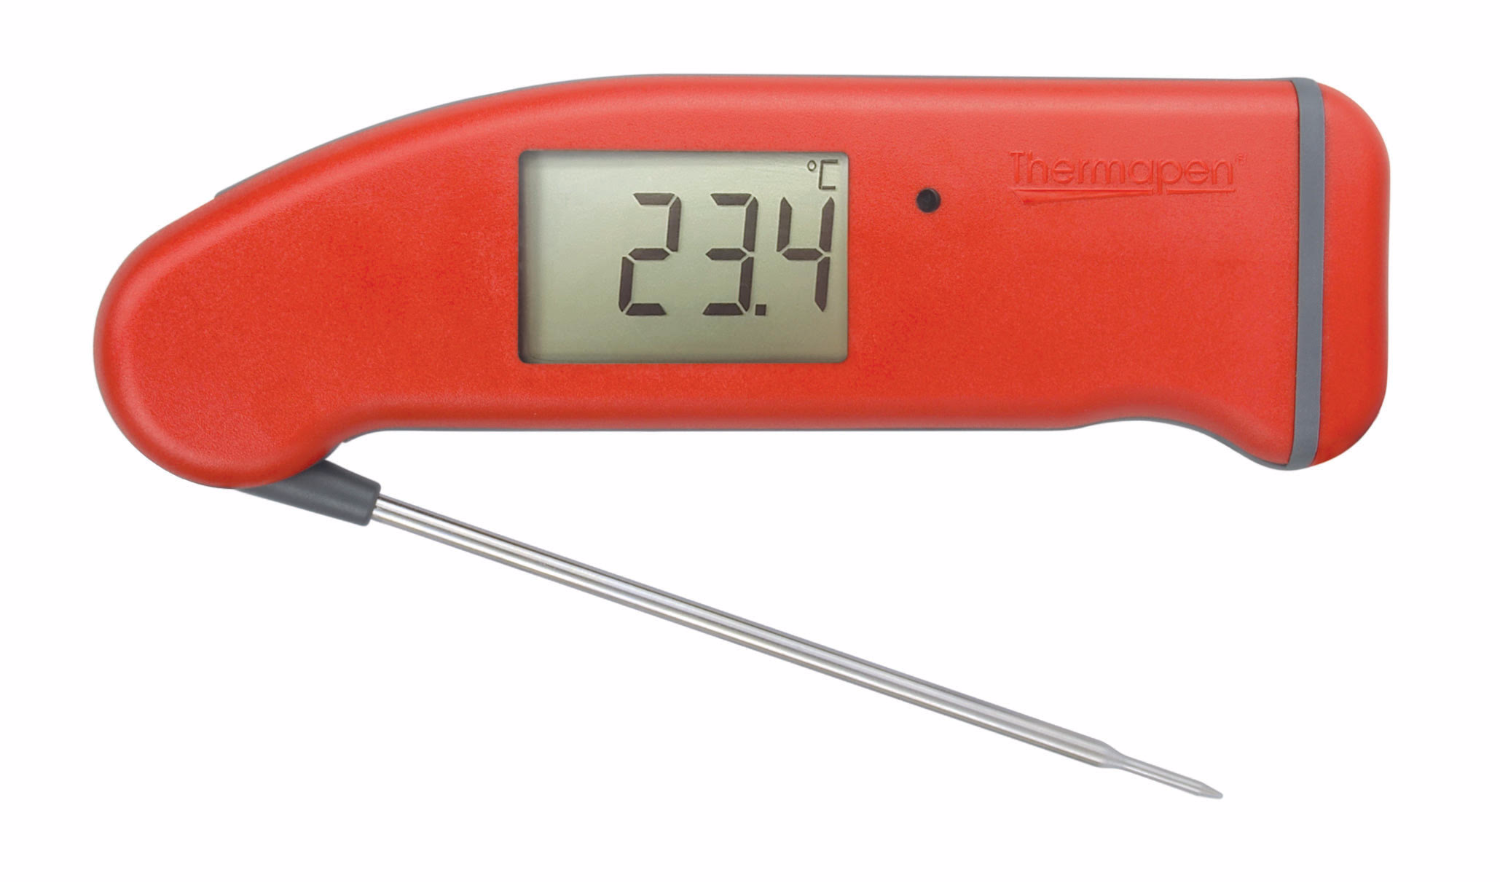 5% off digital meat thermometers